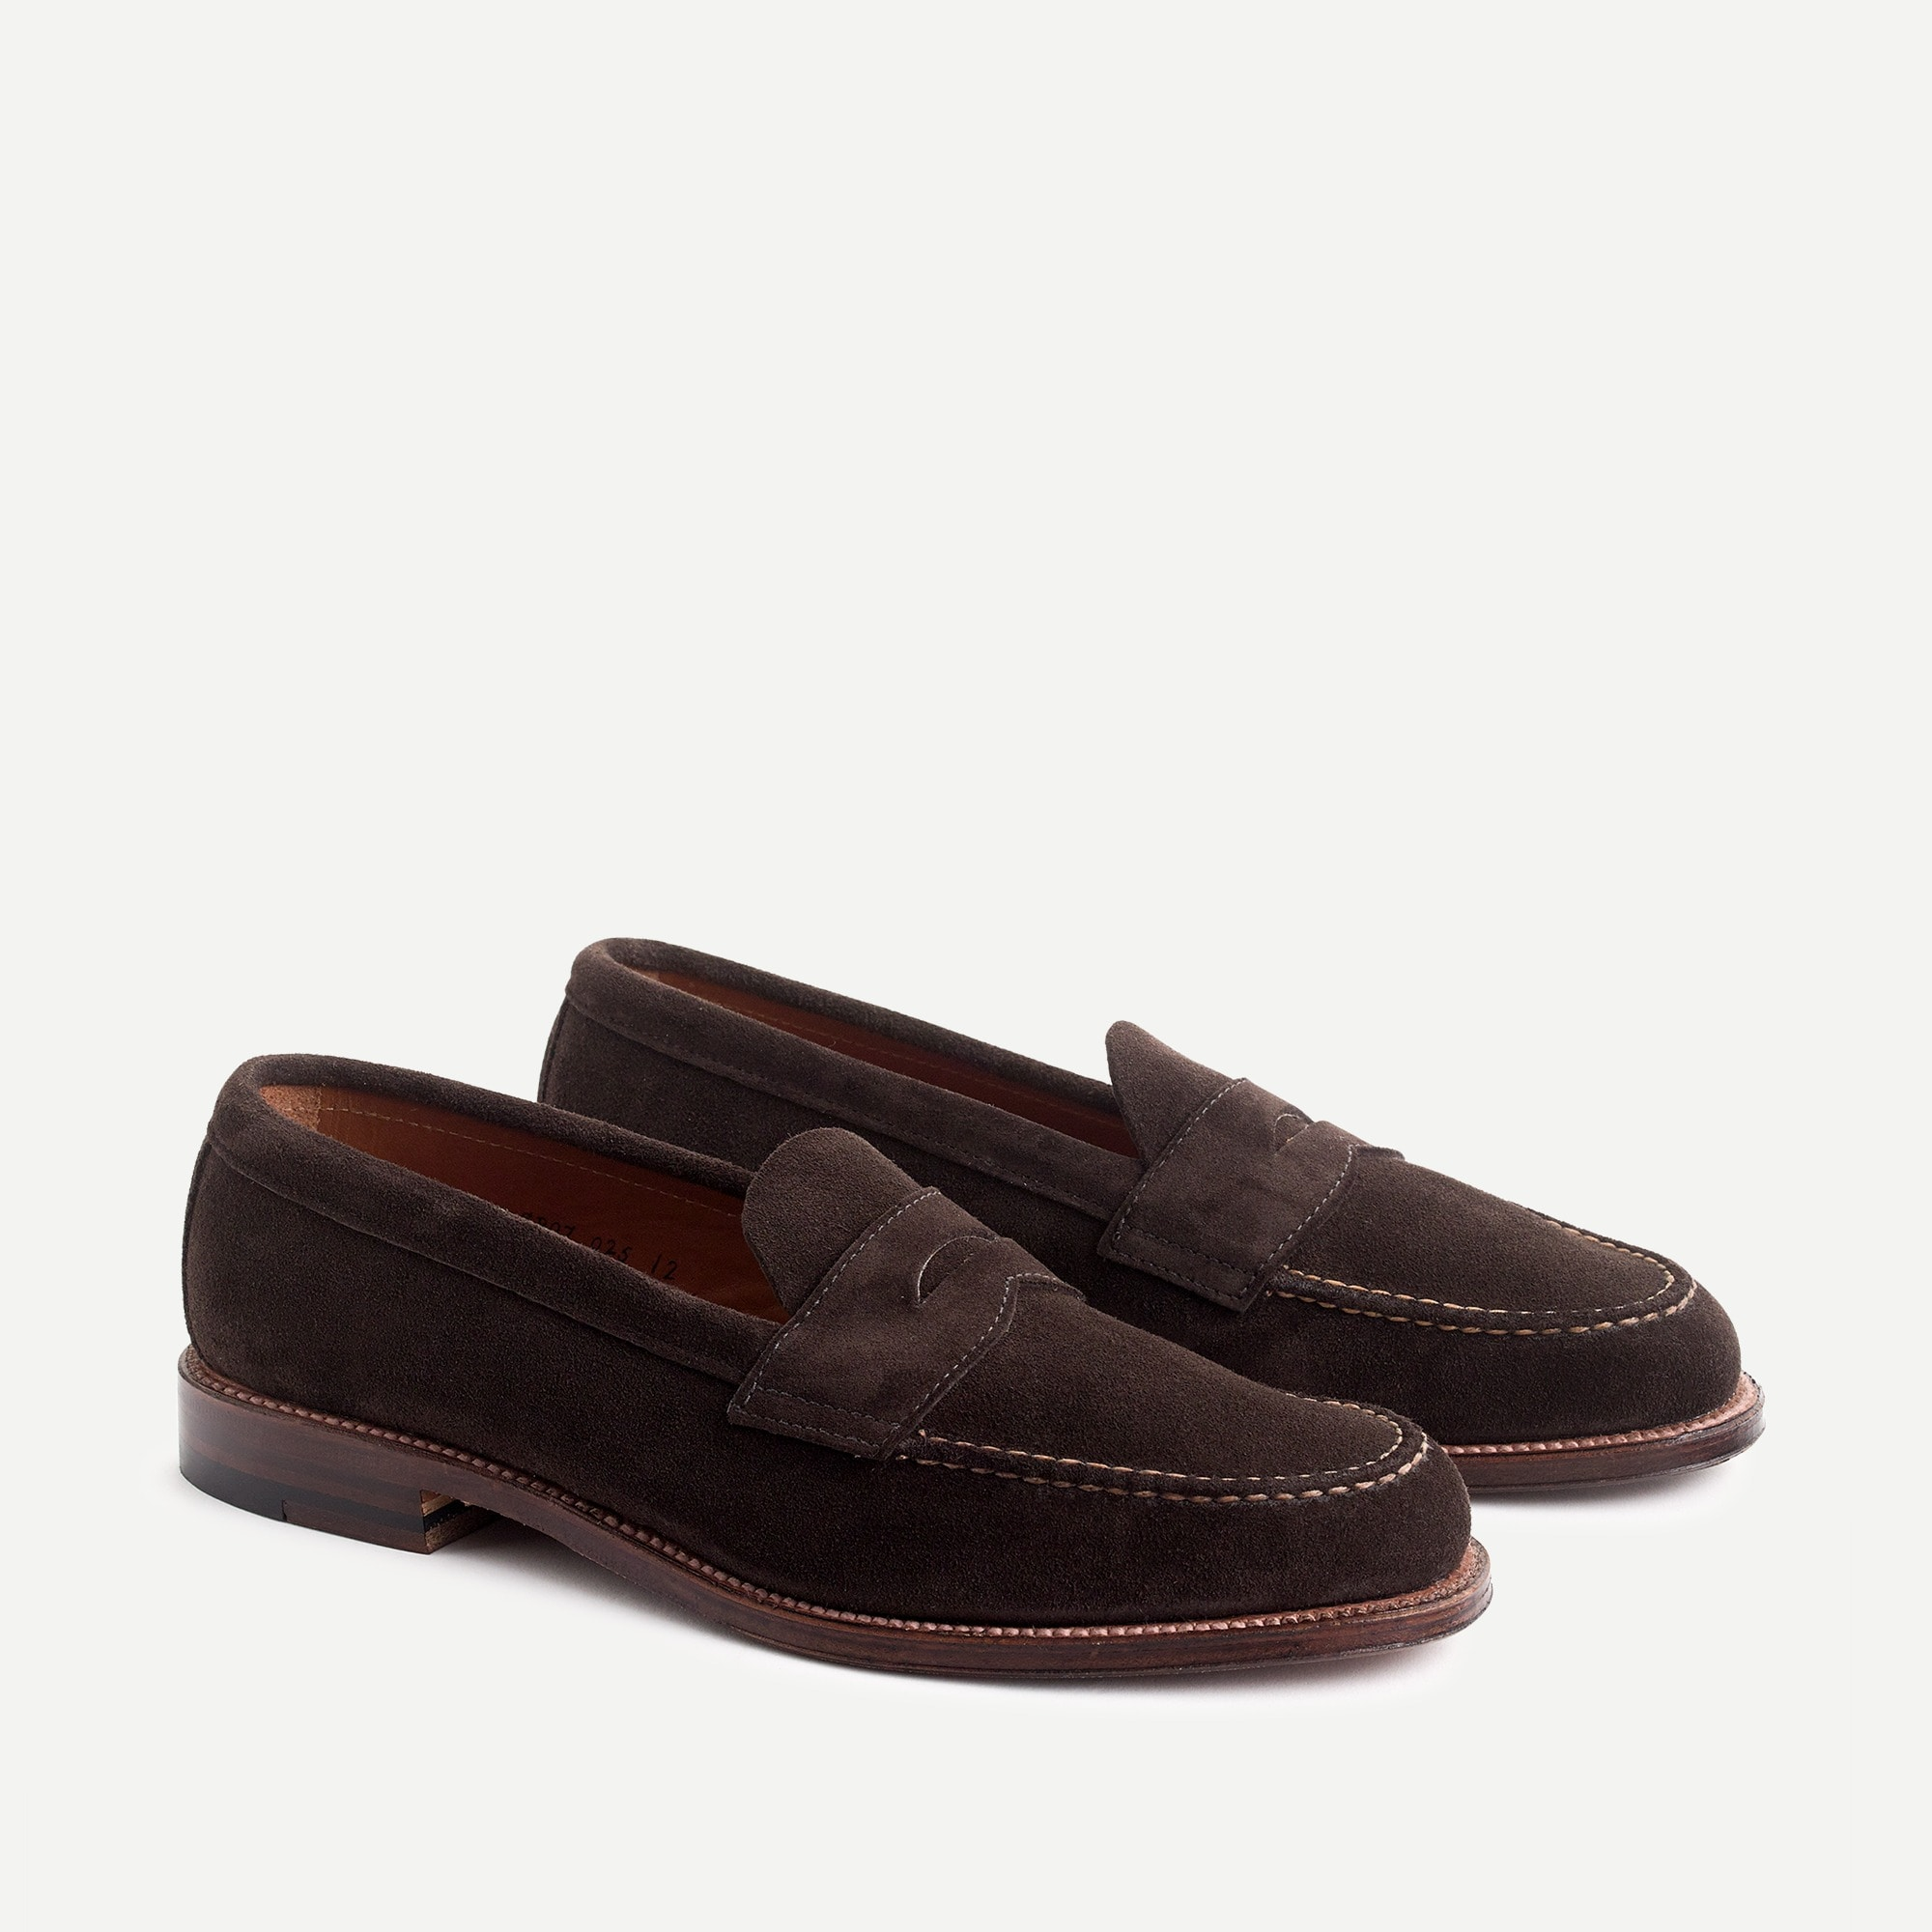 mens Alden® for J.Crew penny loafers in suede